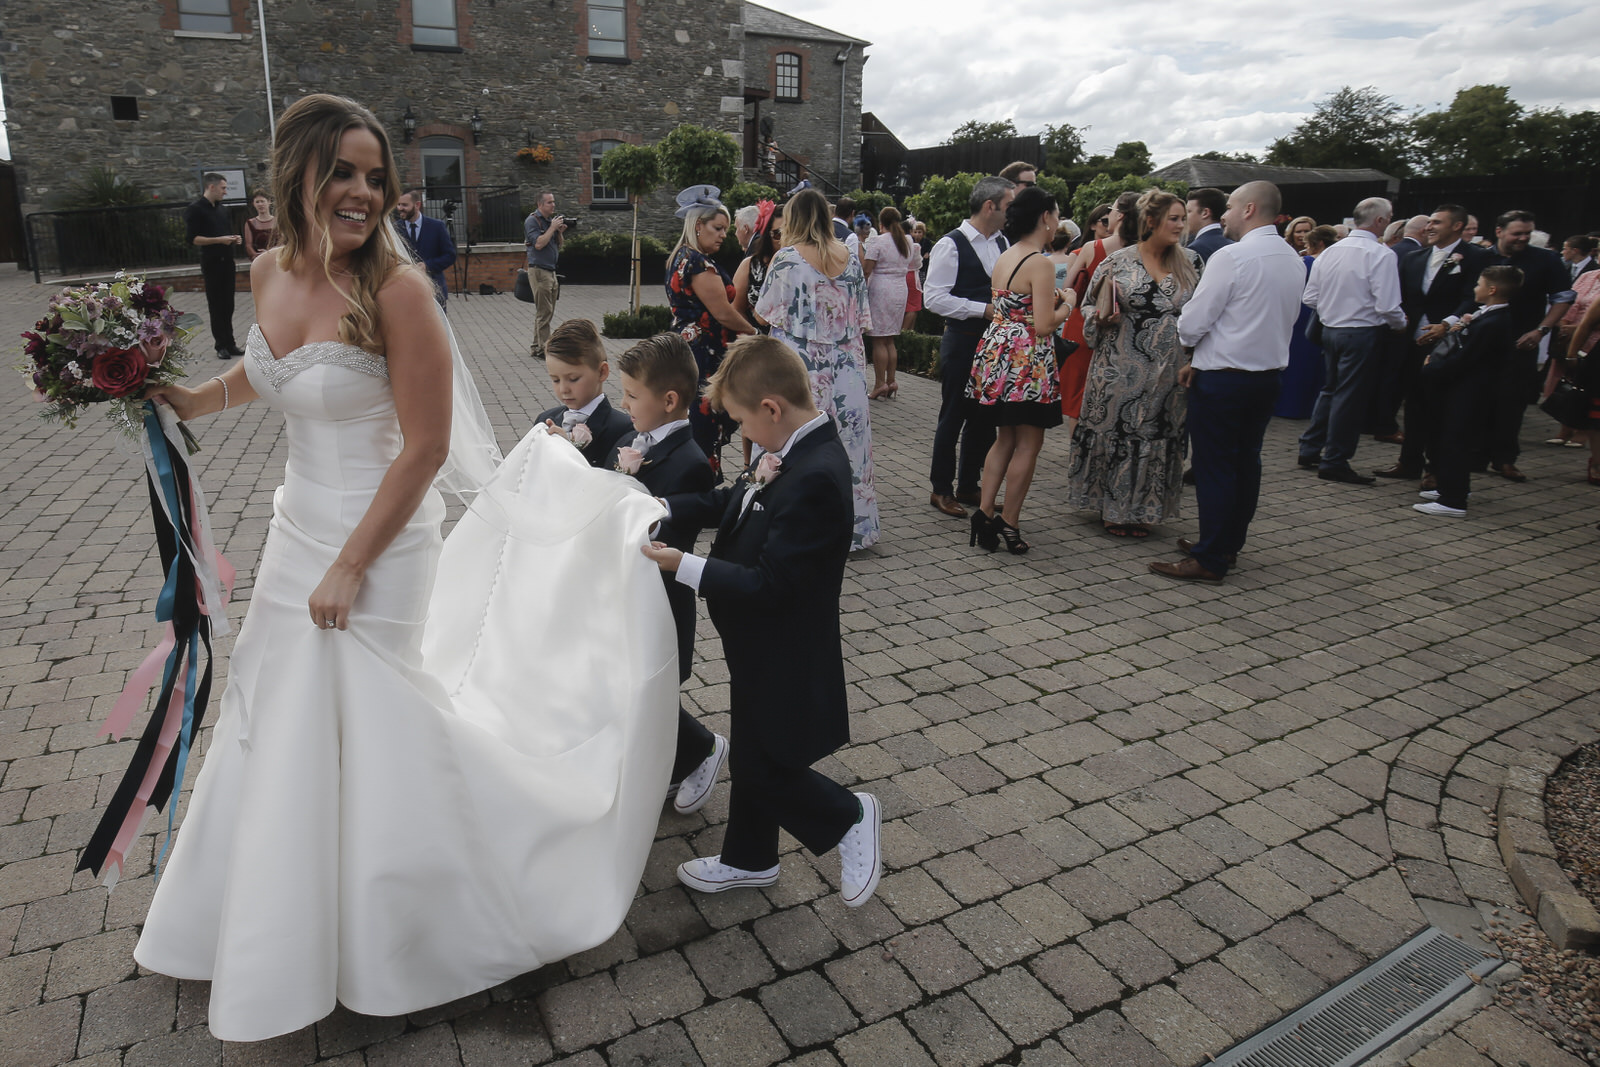 waterford_faithlegg_wedding_photographer_goldenmonentsweddingphotography_a577.jpg